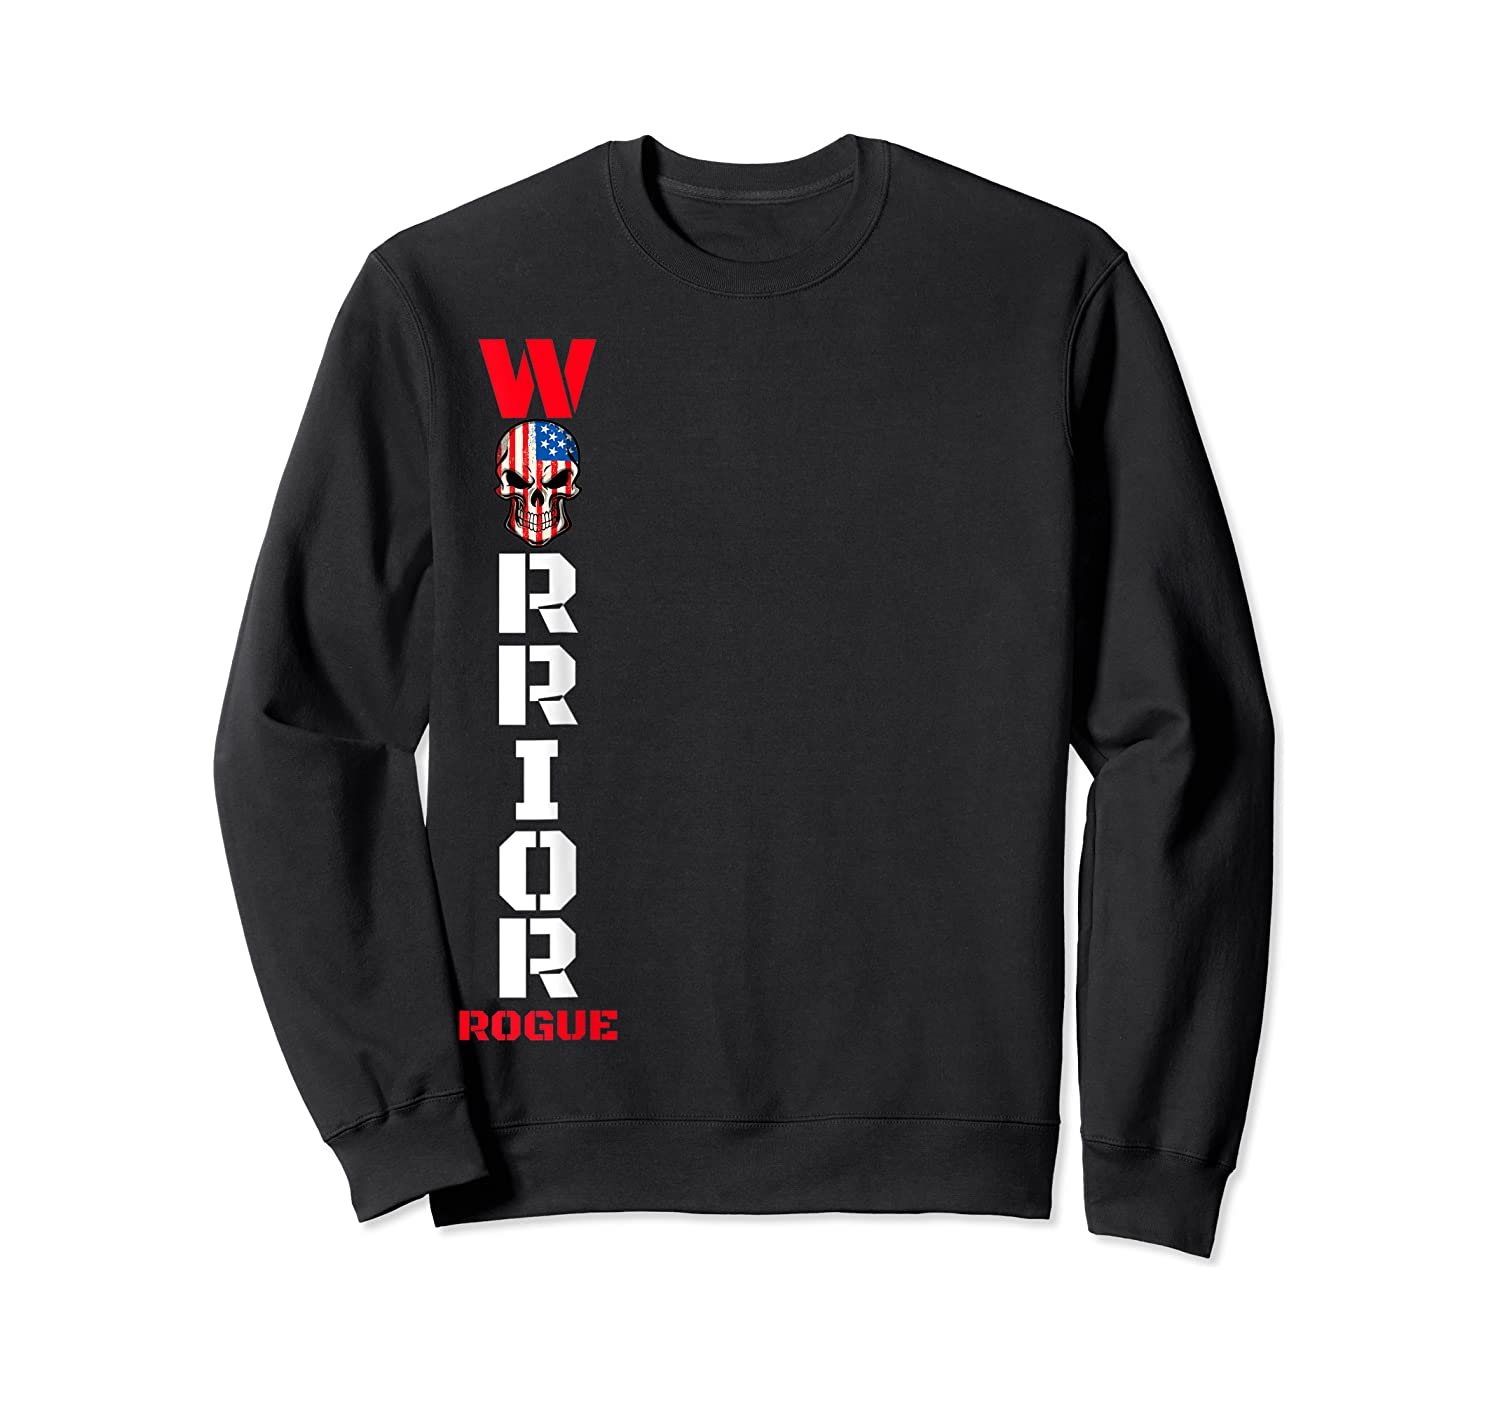 Supreme Rogue Warrior Patriot Military Armed Forces Rebel T-shirt Crewneck Sweater